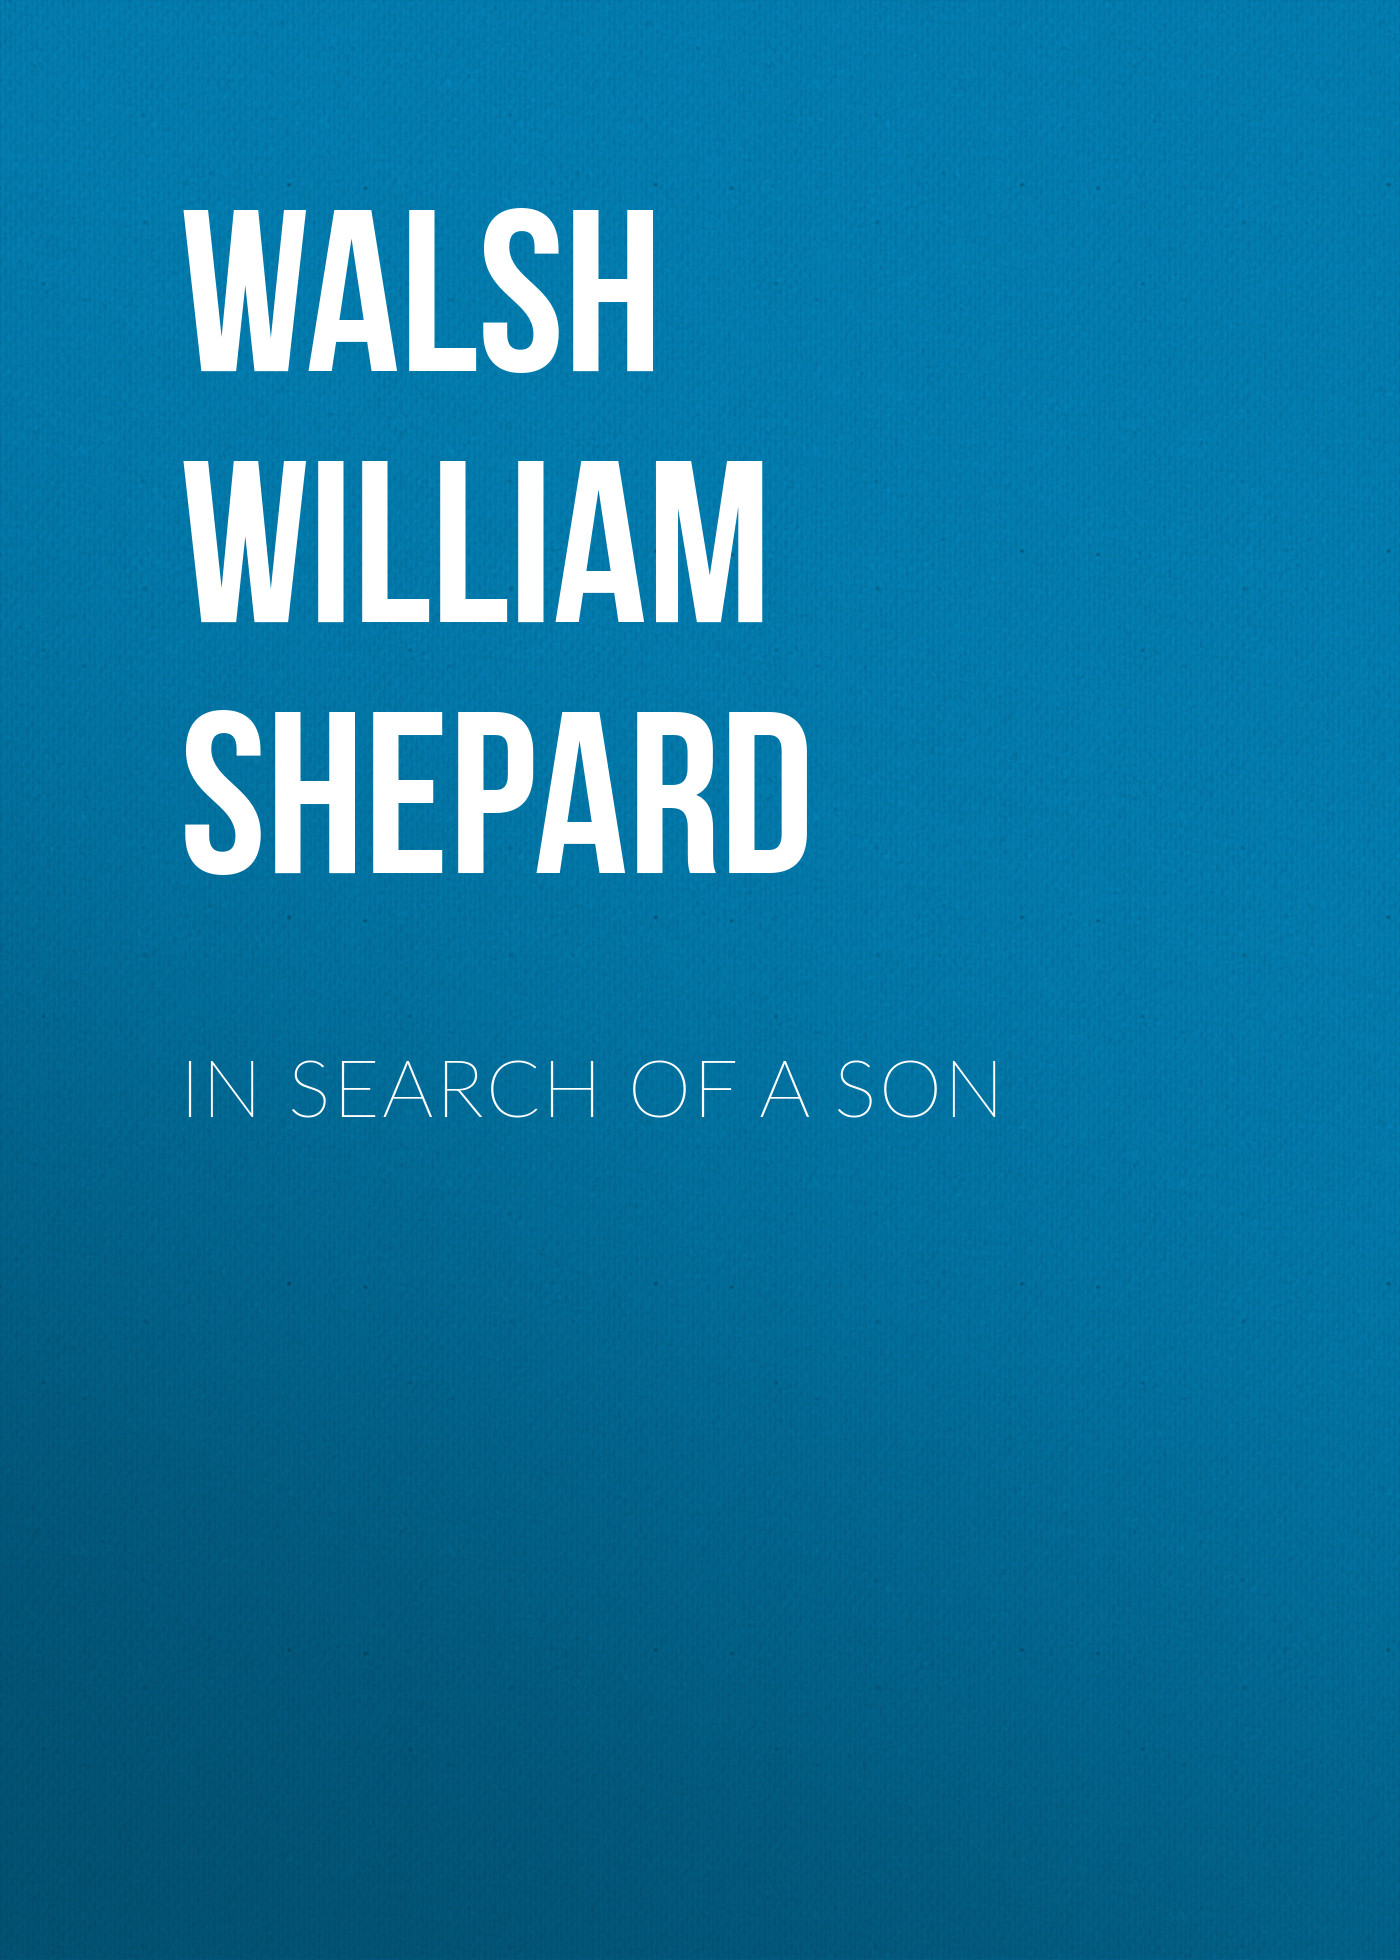 Walsh William Shepard In Search of a Son for asus zenbook ux32a laptop screen m133nwn1 r1 m133nwn1 r1 lcd screen 1366 768 edp 30 pins good original new